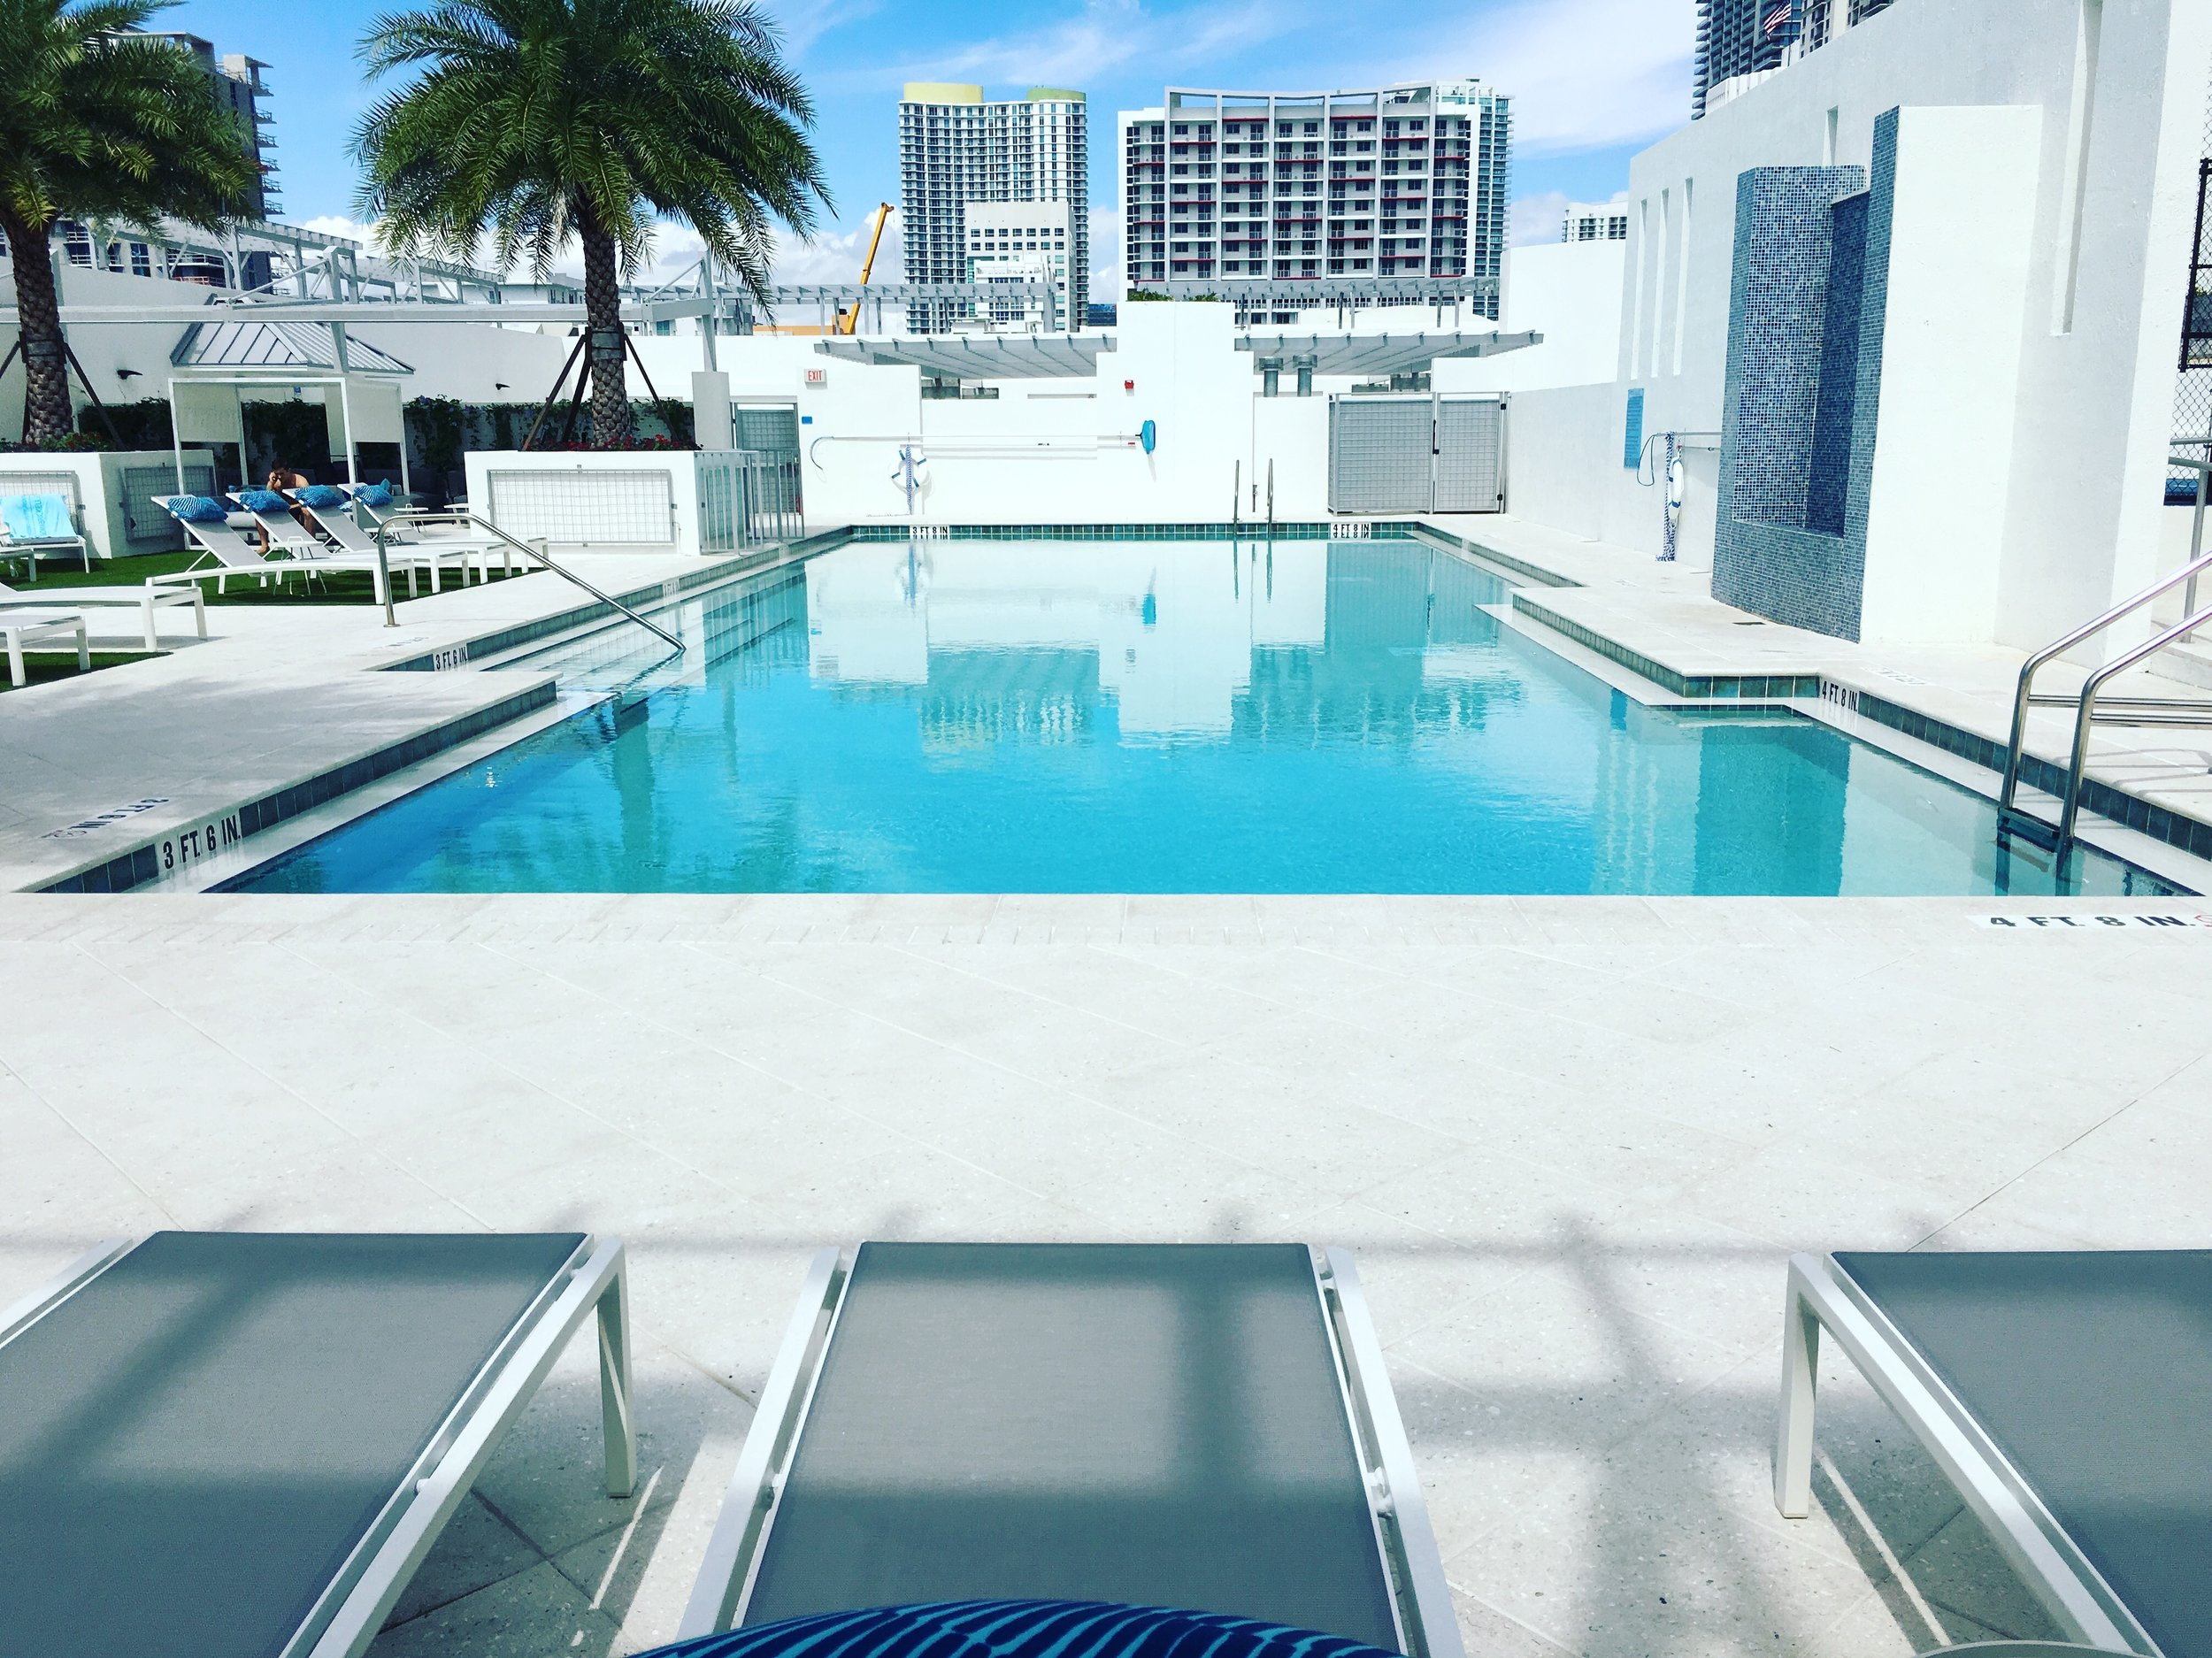 Our rooftop pool